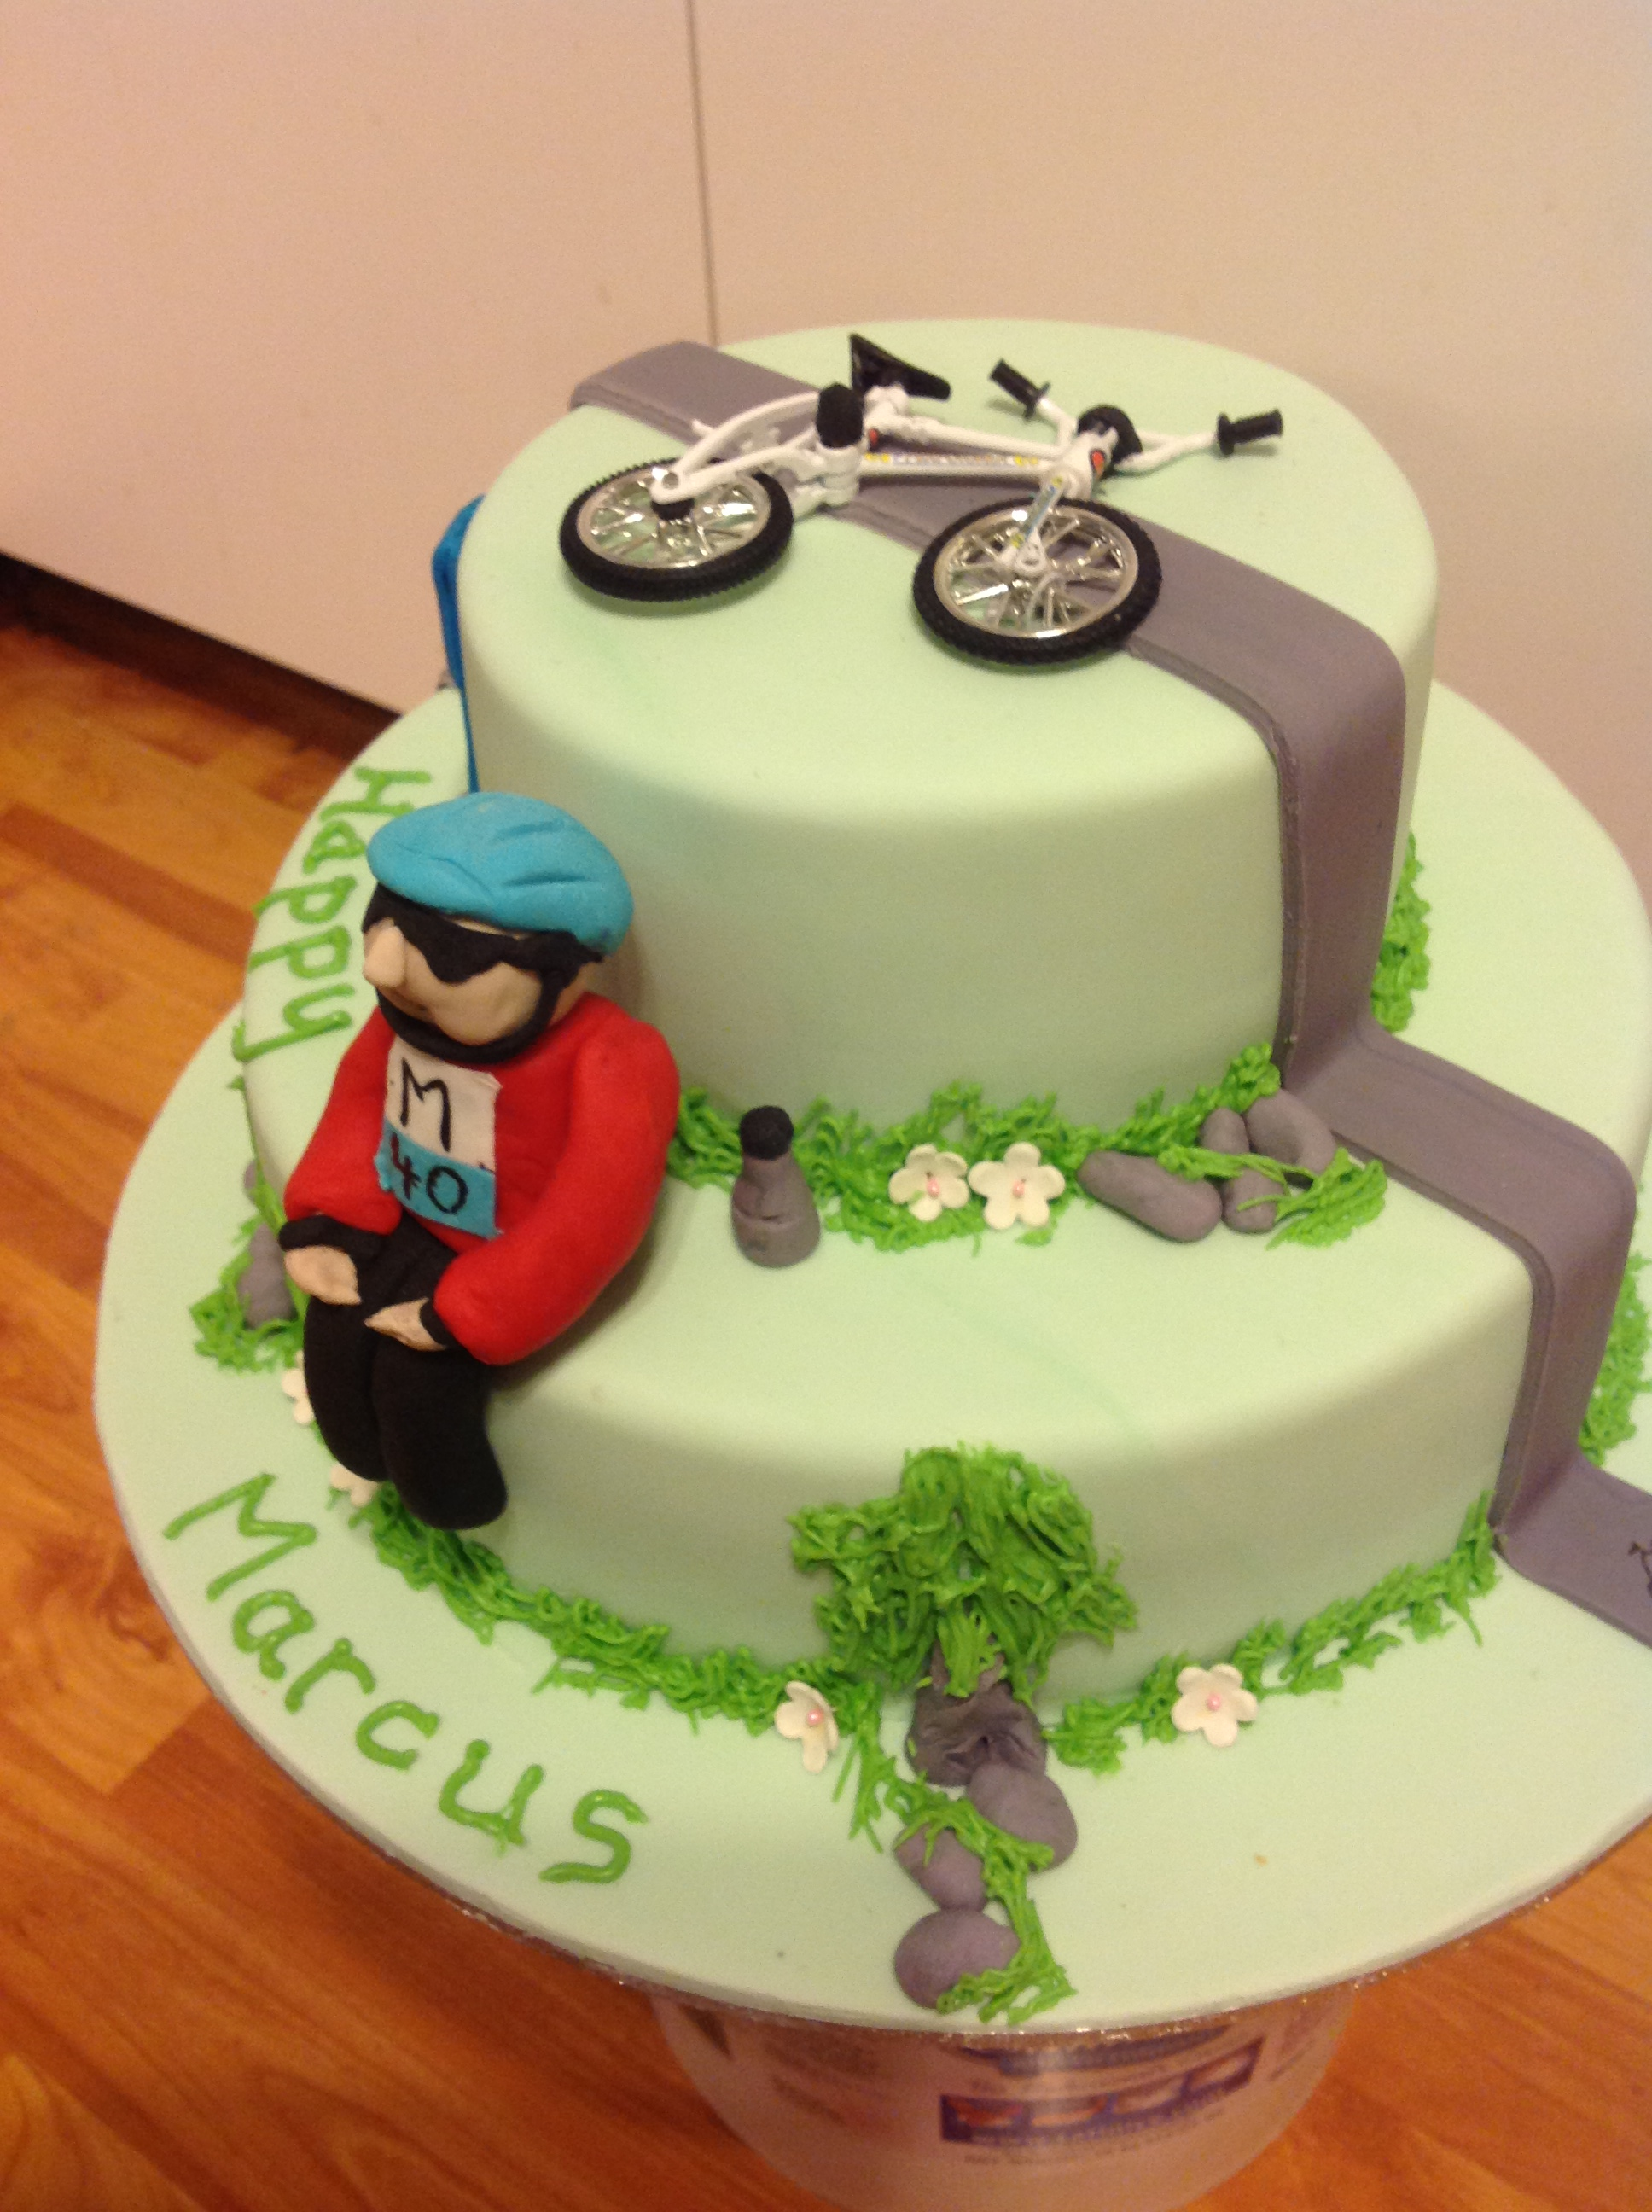 Vinescakes 2+tier+bicycle+themed+cake.JPG